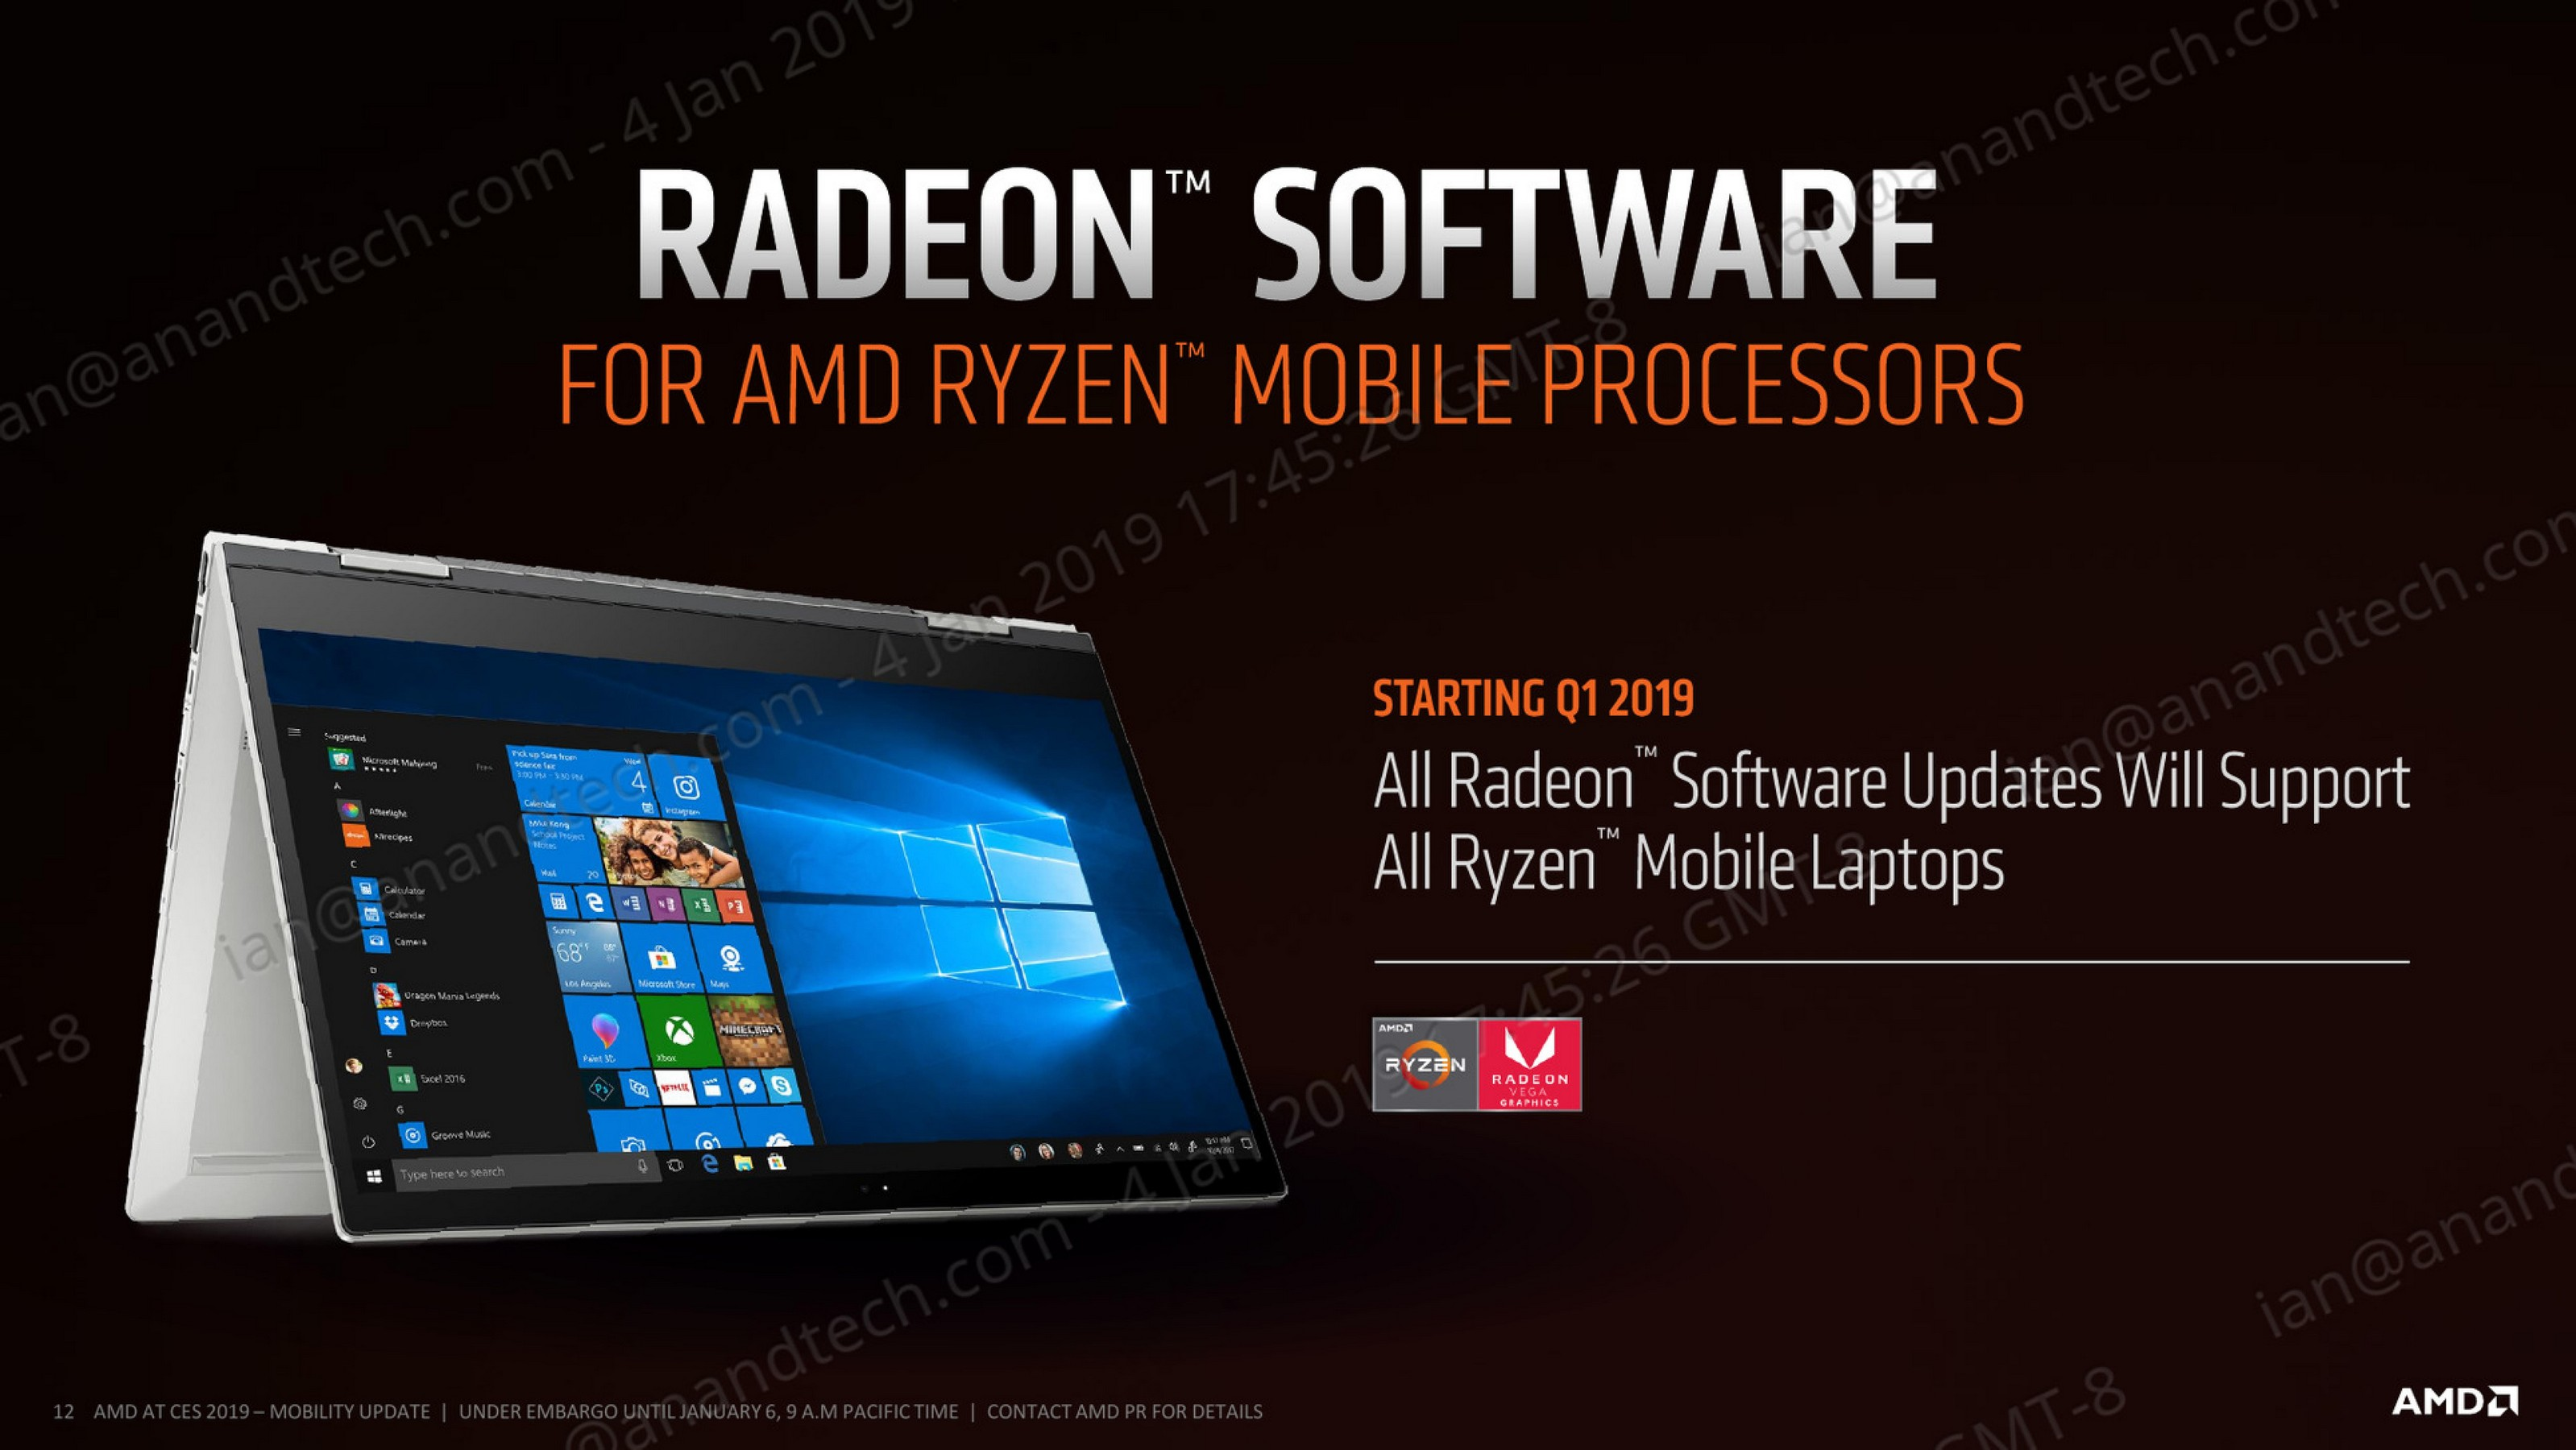 AMD at CES 2019: Ryzen Mobile 3000-Series Launched, 2nd Gen Mobile